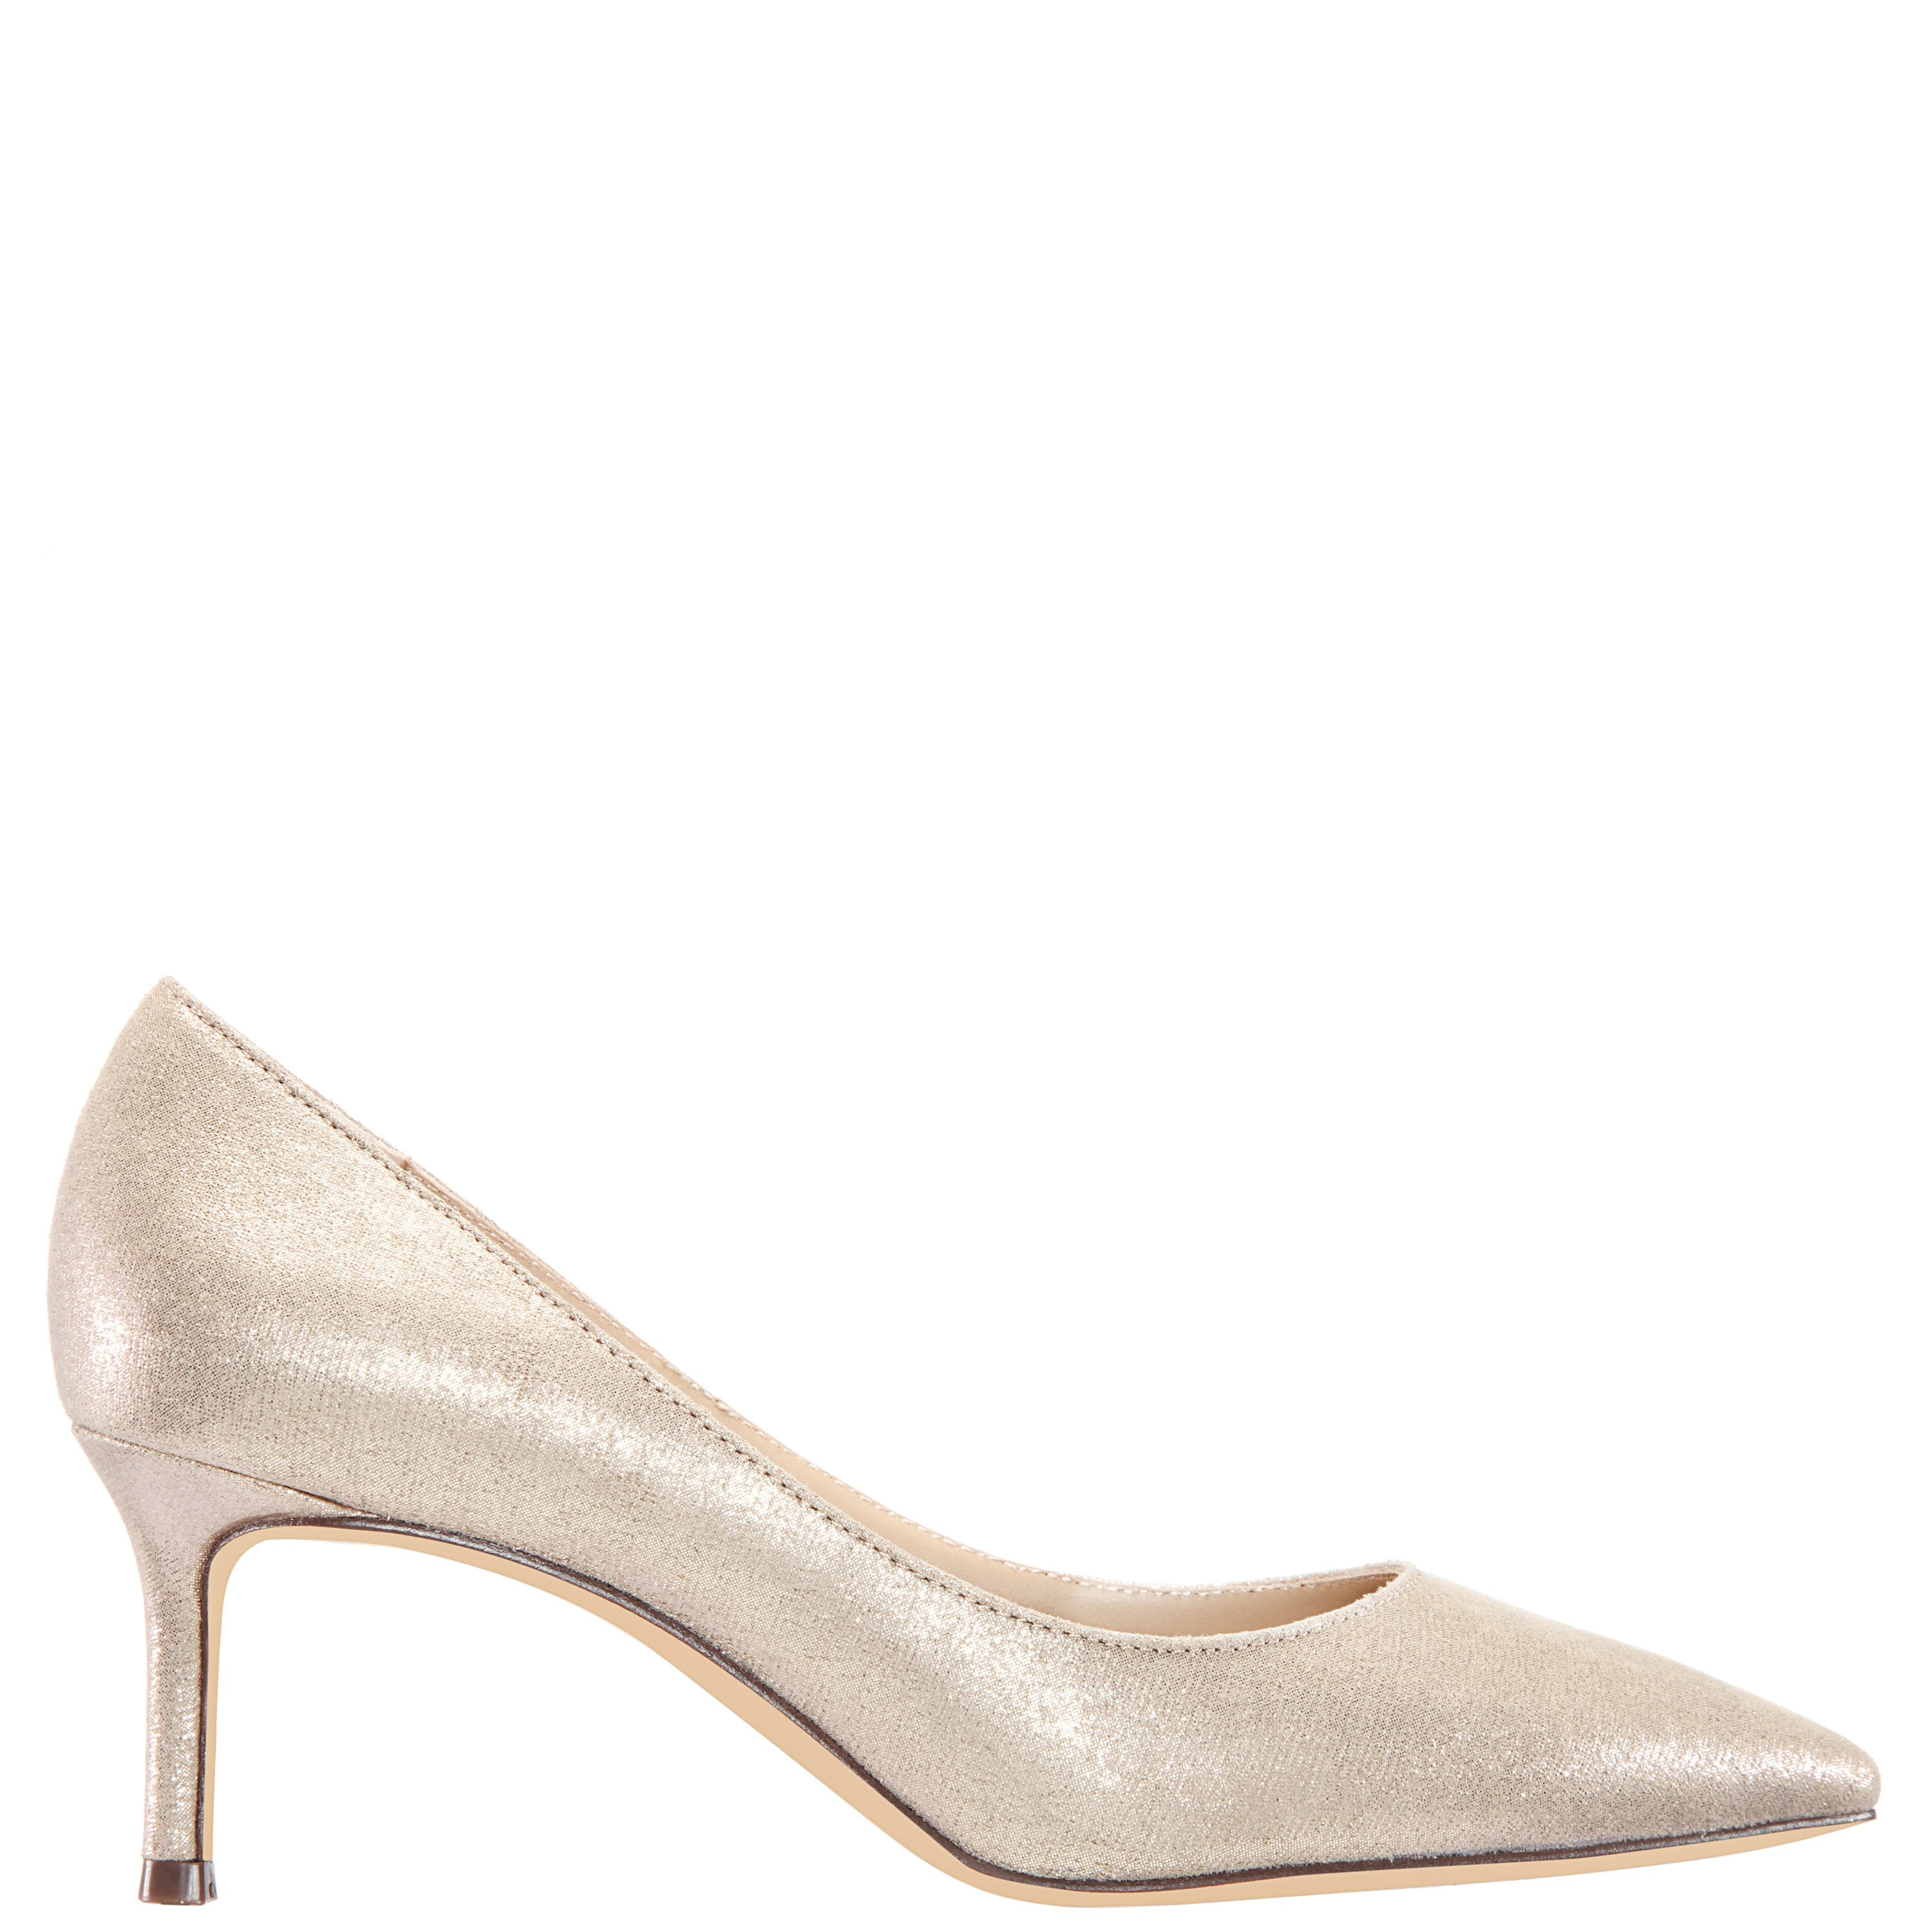 NINA60-TAUPE REFLECTIVE SUEDETTE - TAUPE REFLECTIVE SUEDETTE